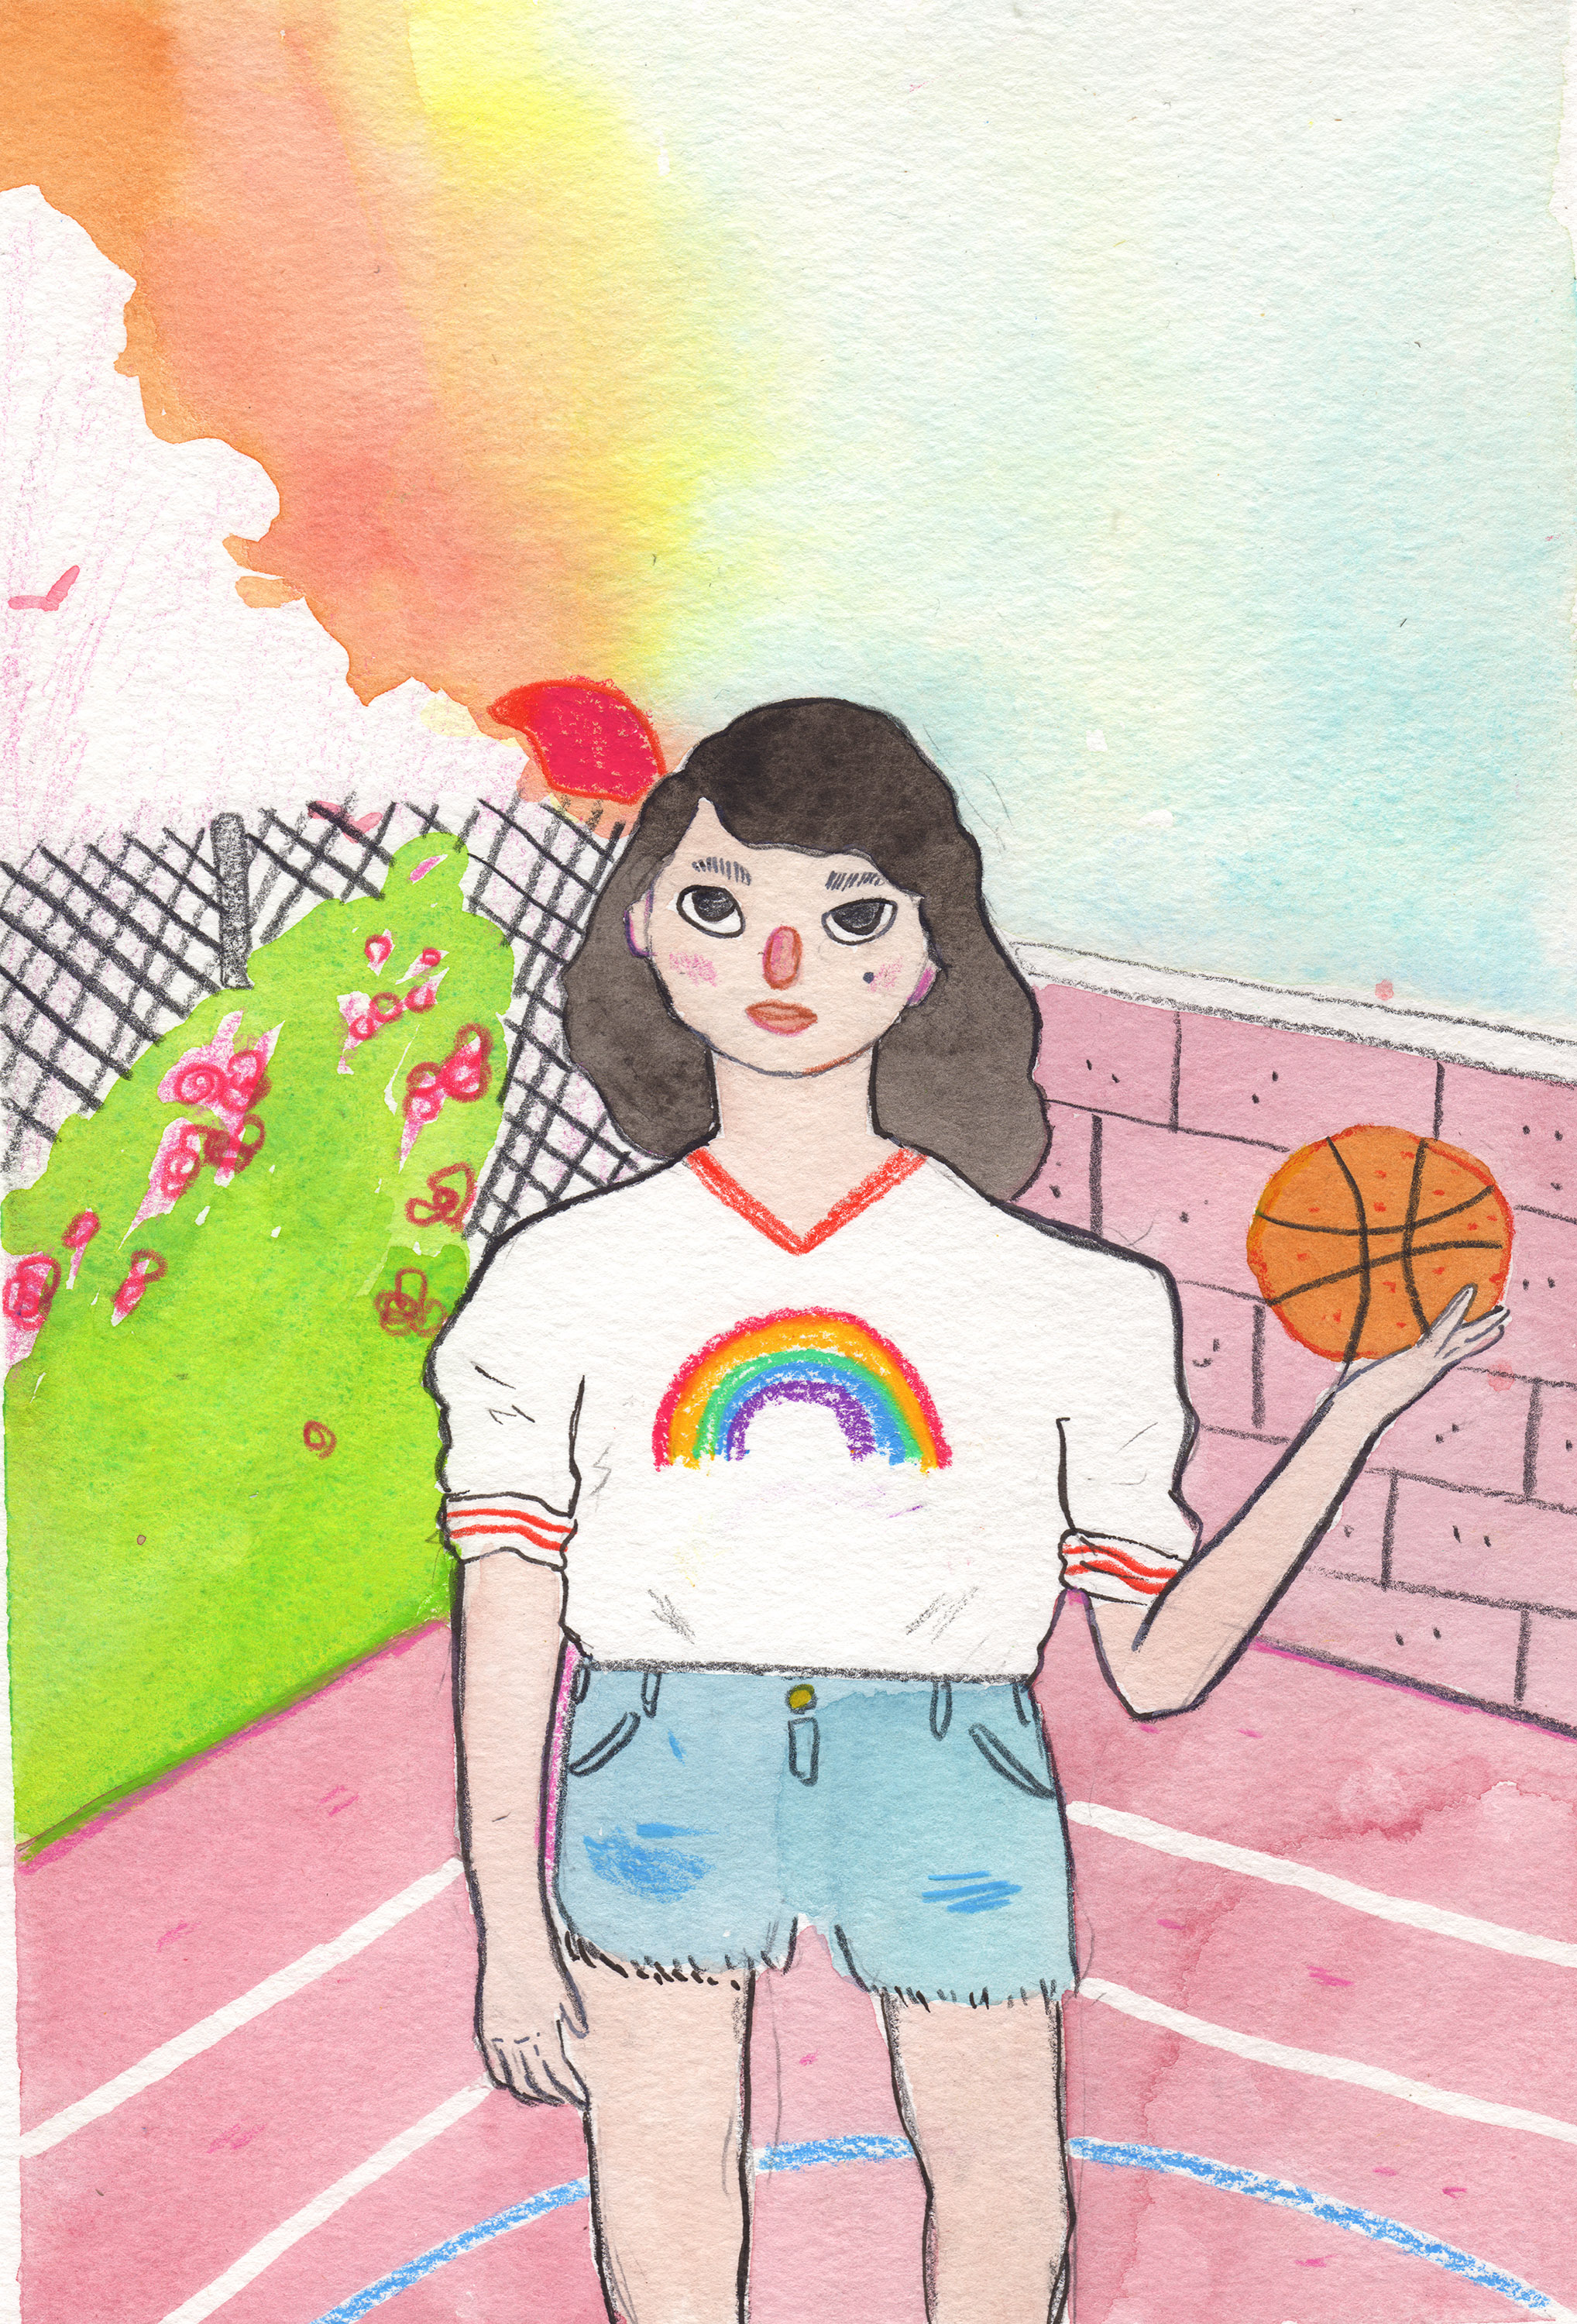 bball girl draft NEW.jpg